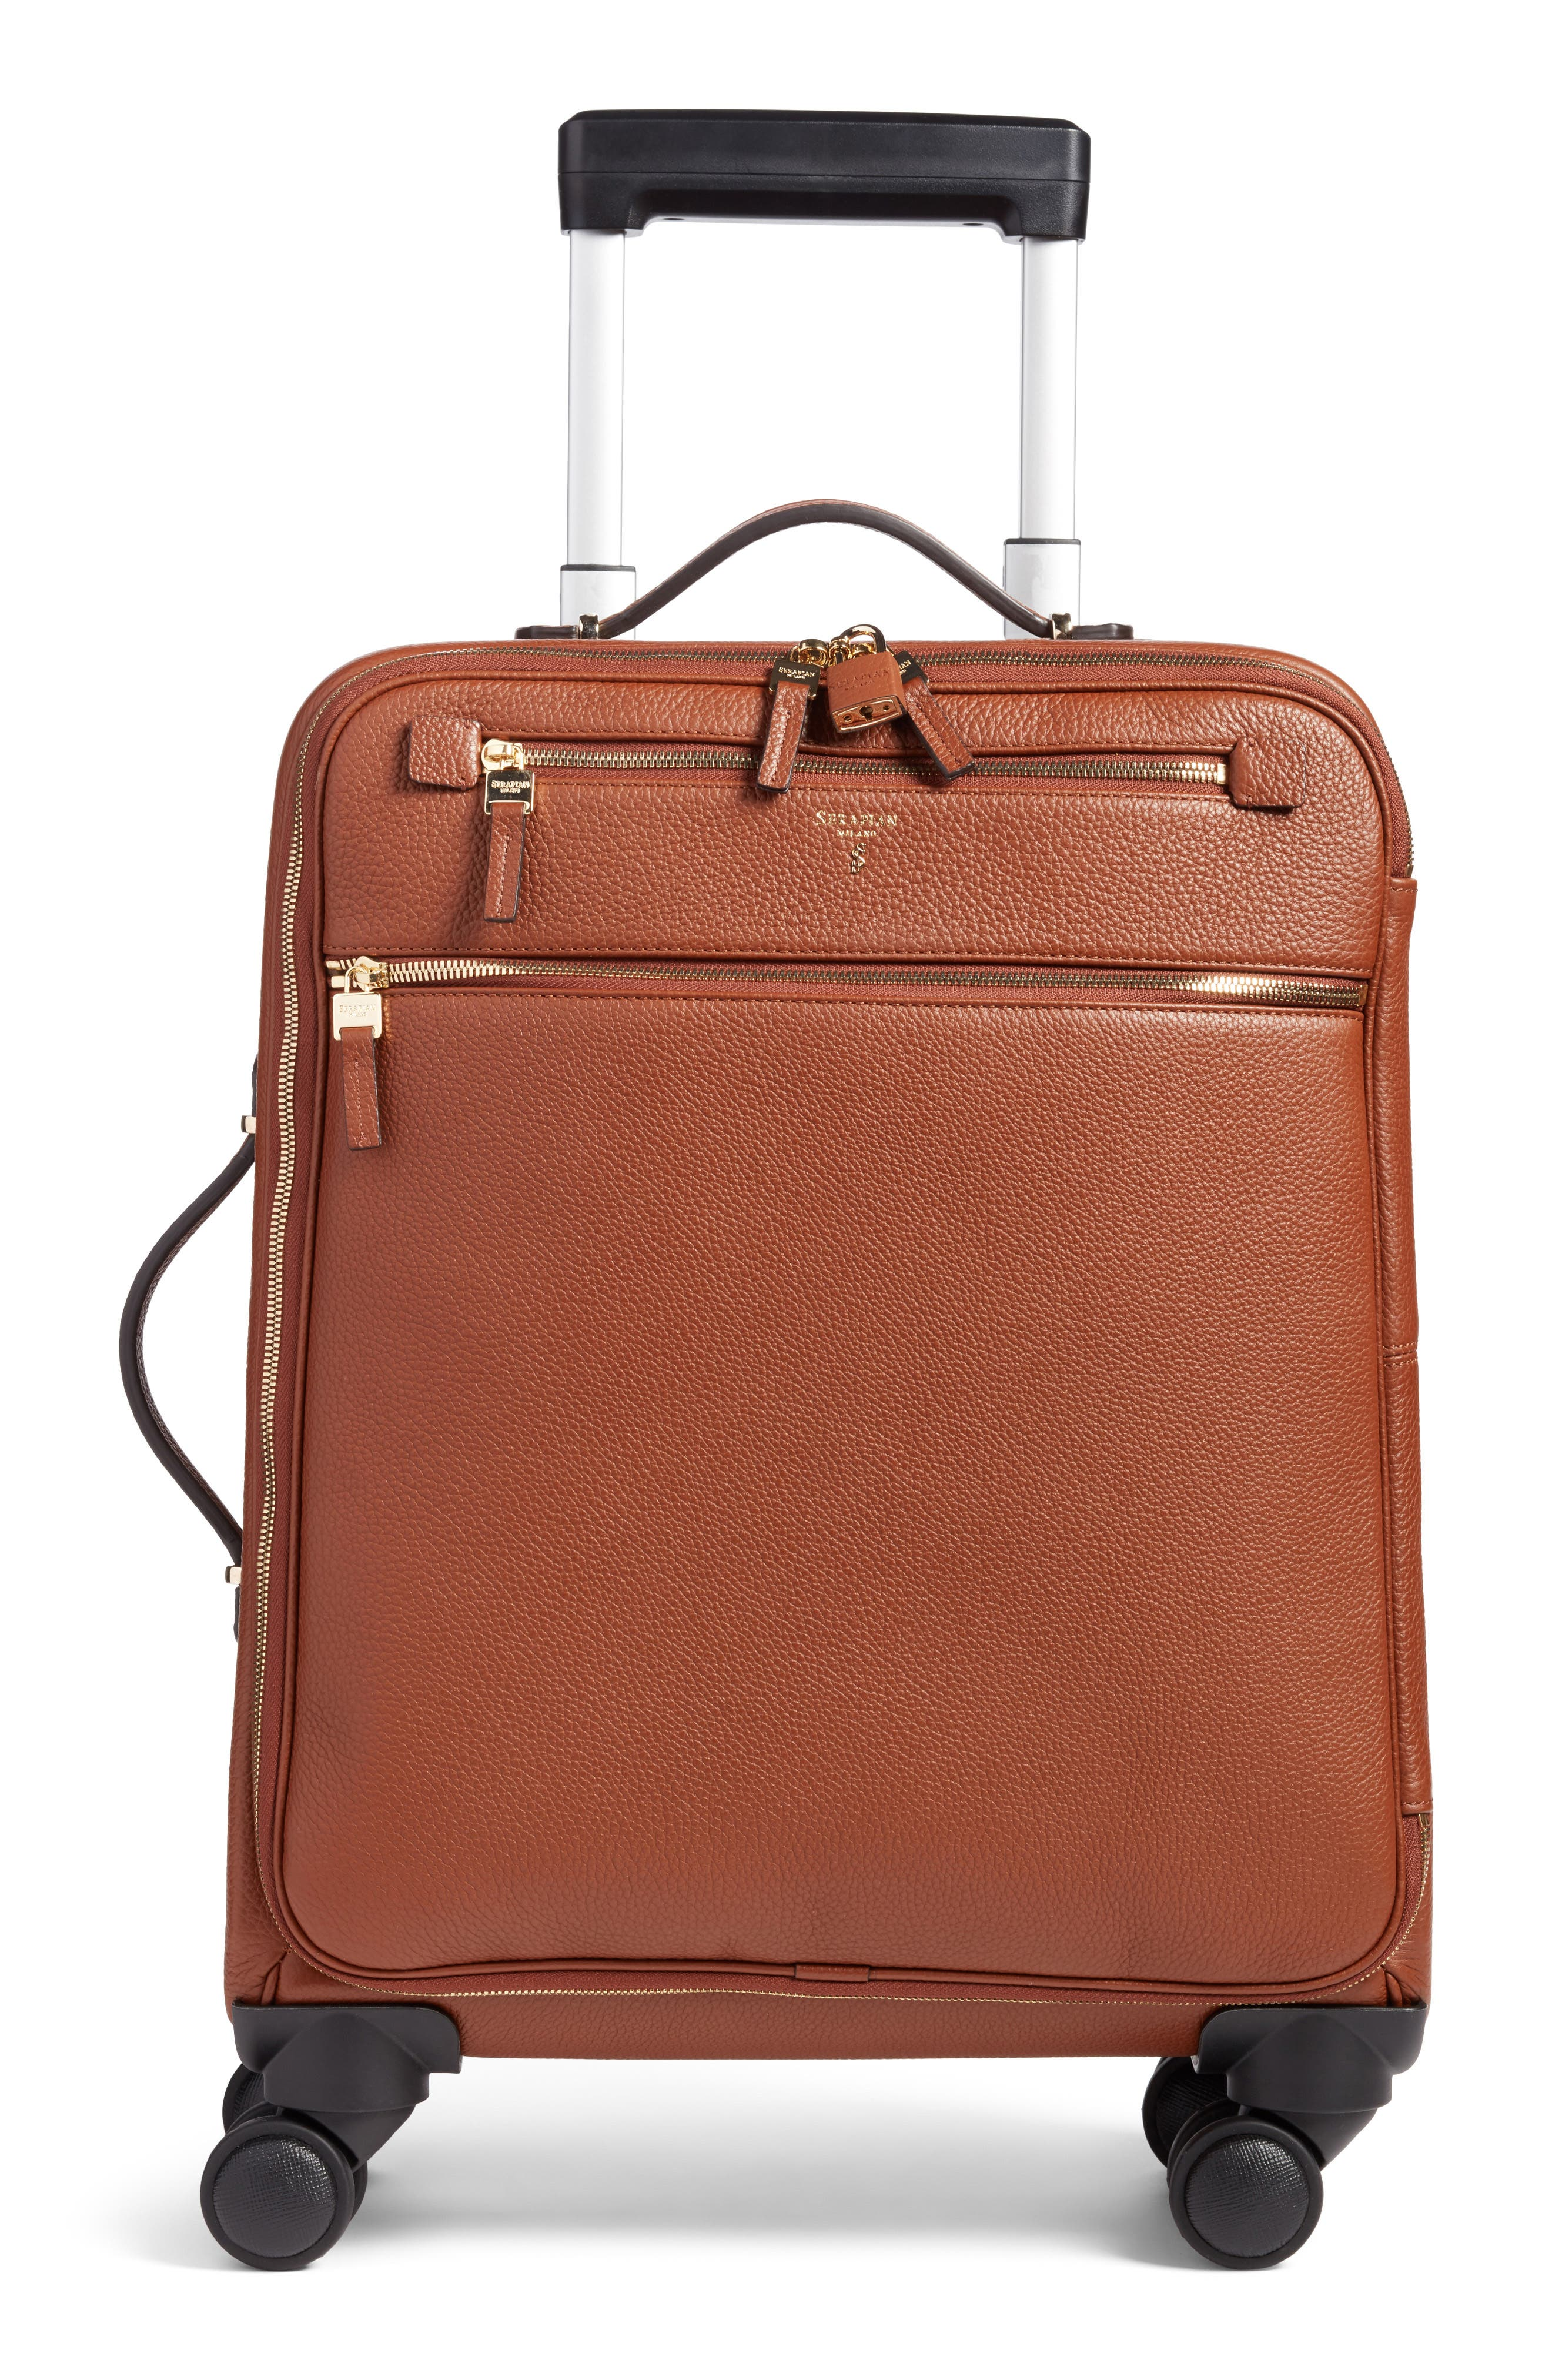 Trolley Spinner Wheeled Carry-On Suitcase,                             Main thumbnail 1, color,                             Sienna